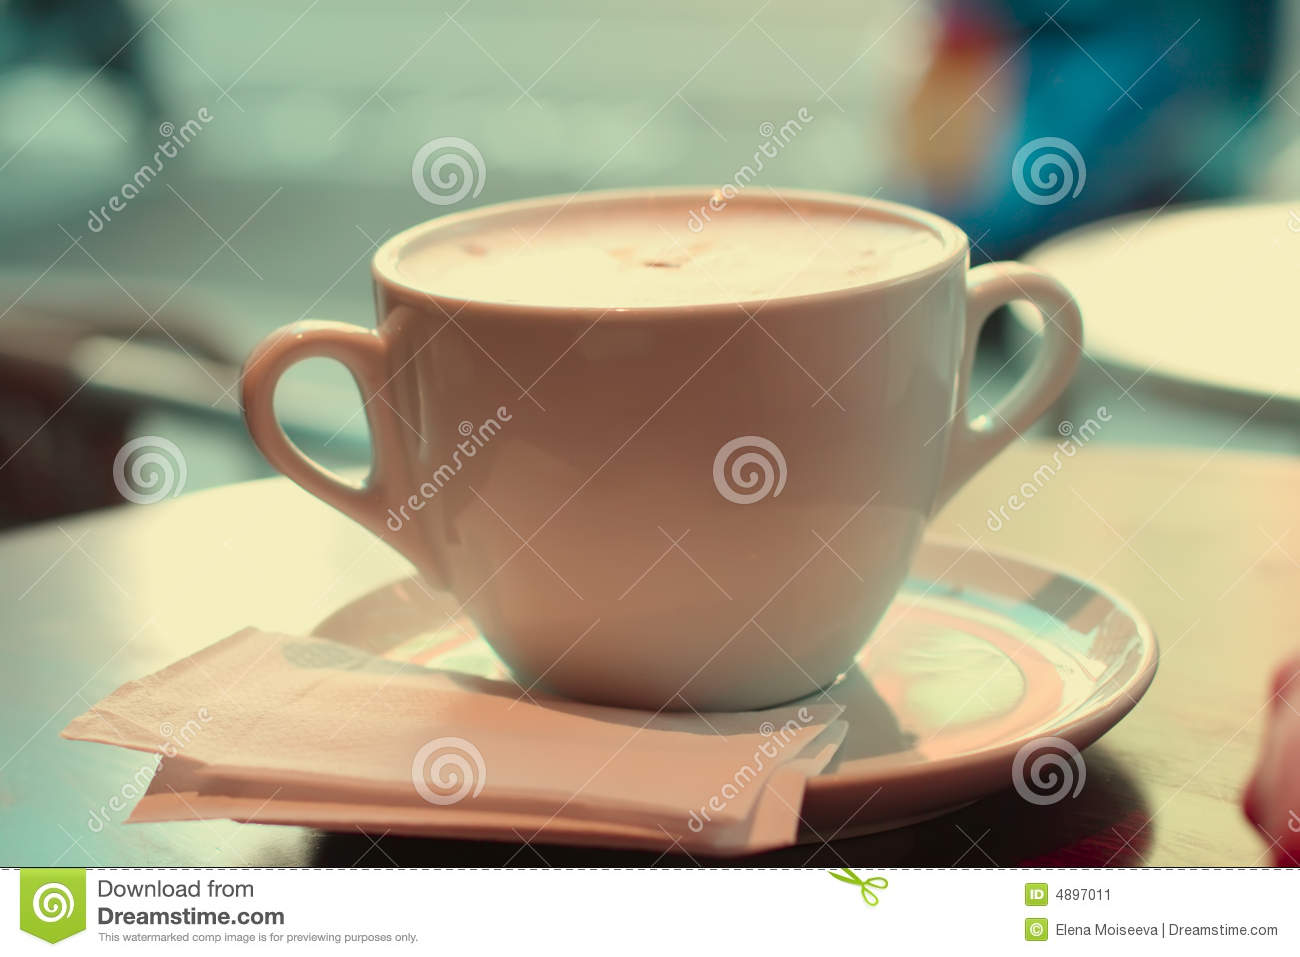 Large cup of coffee in retro style colors